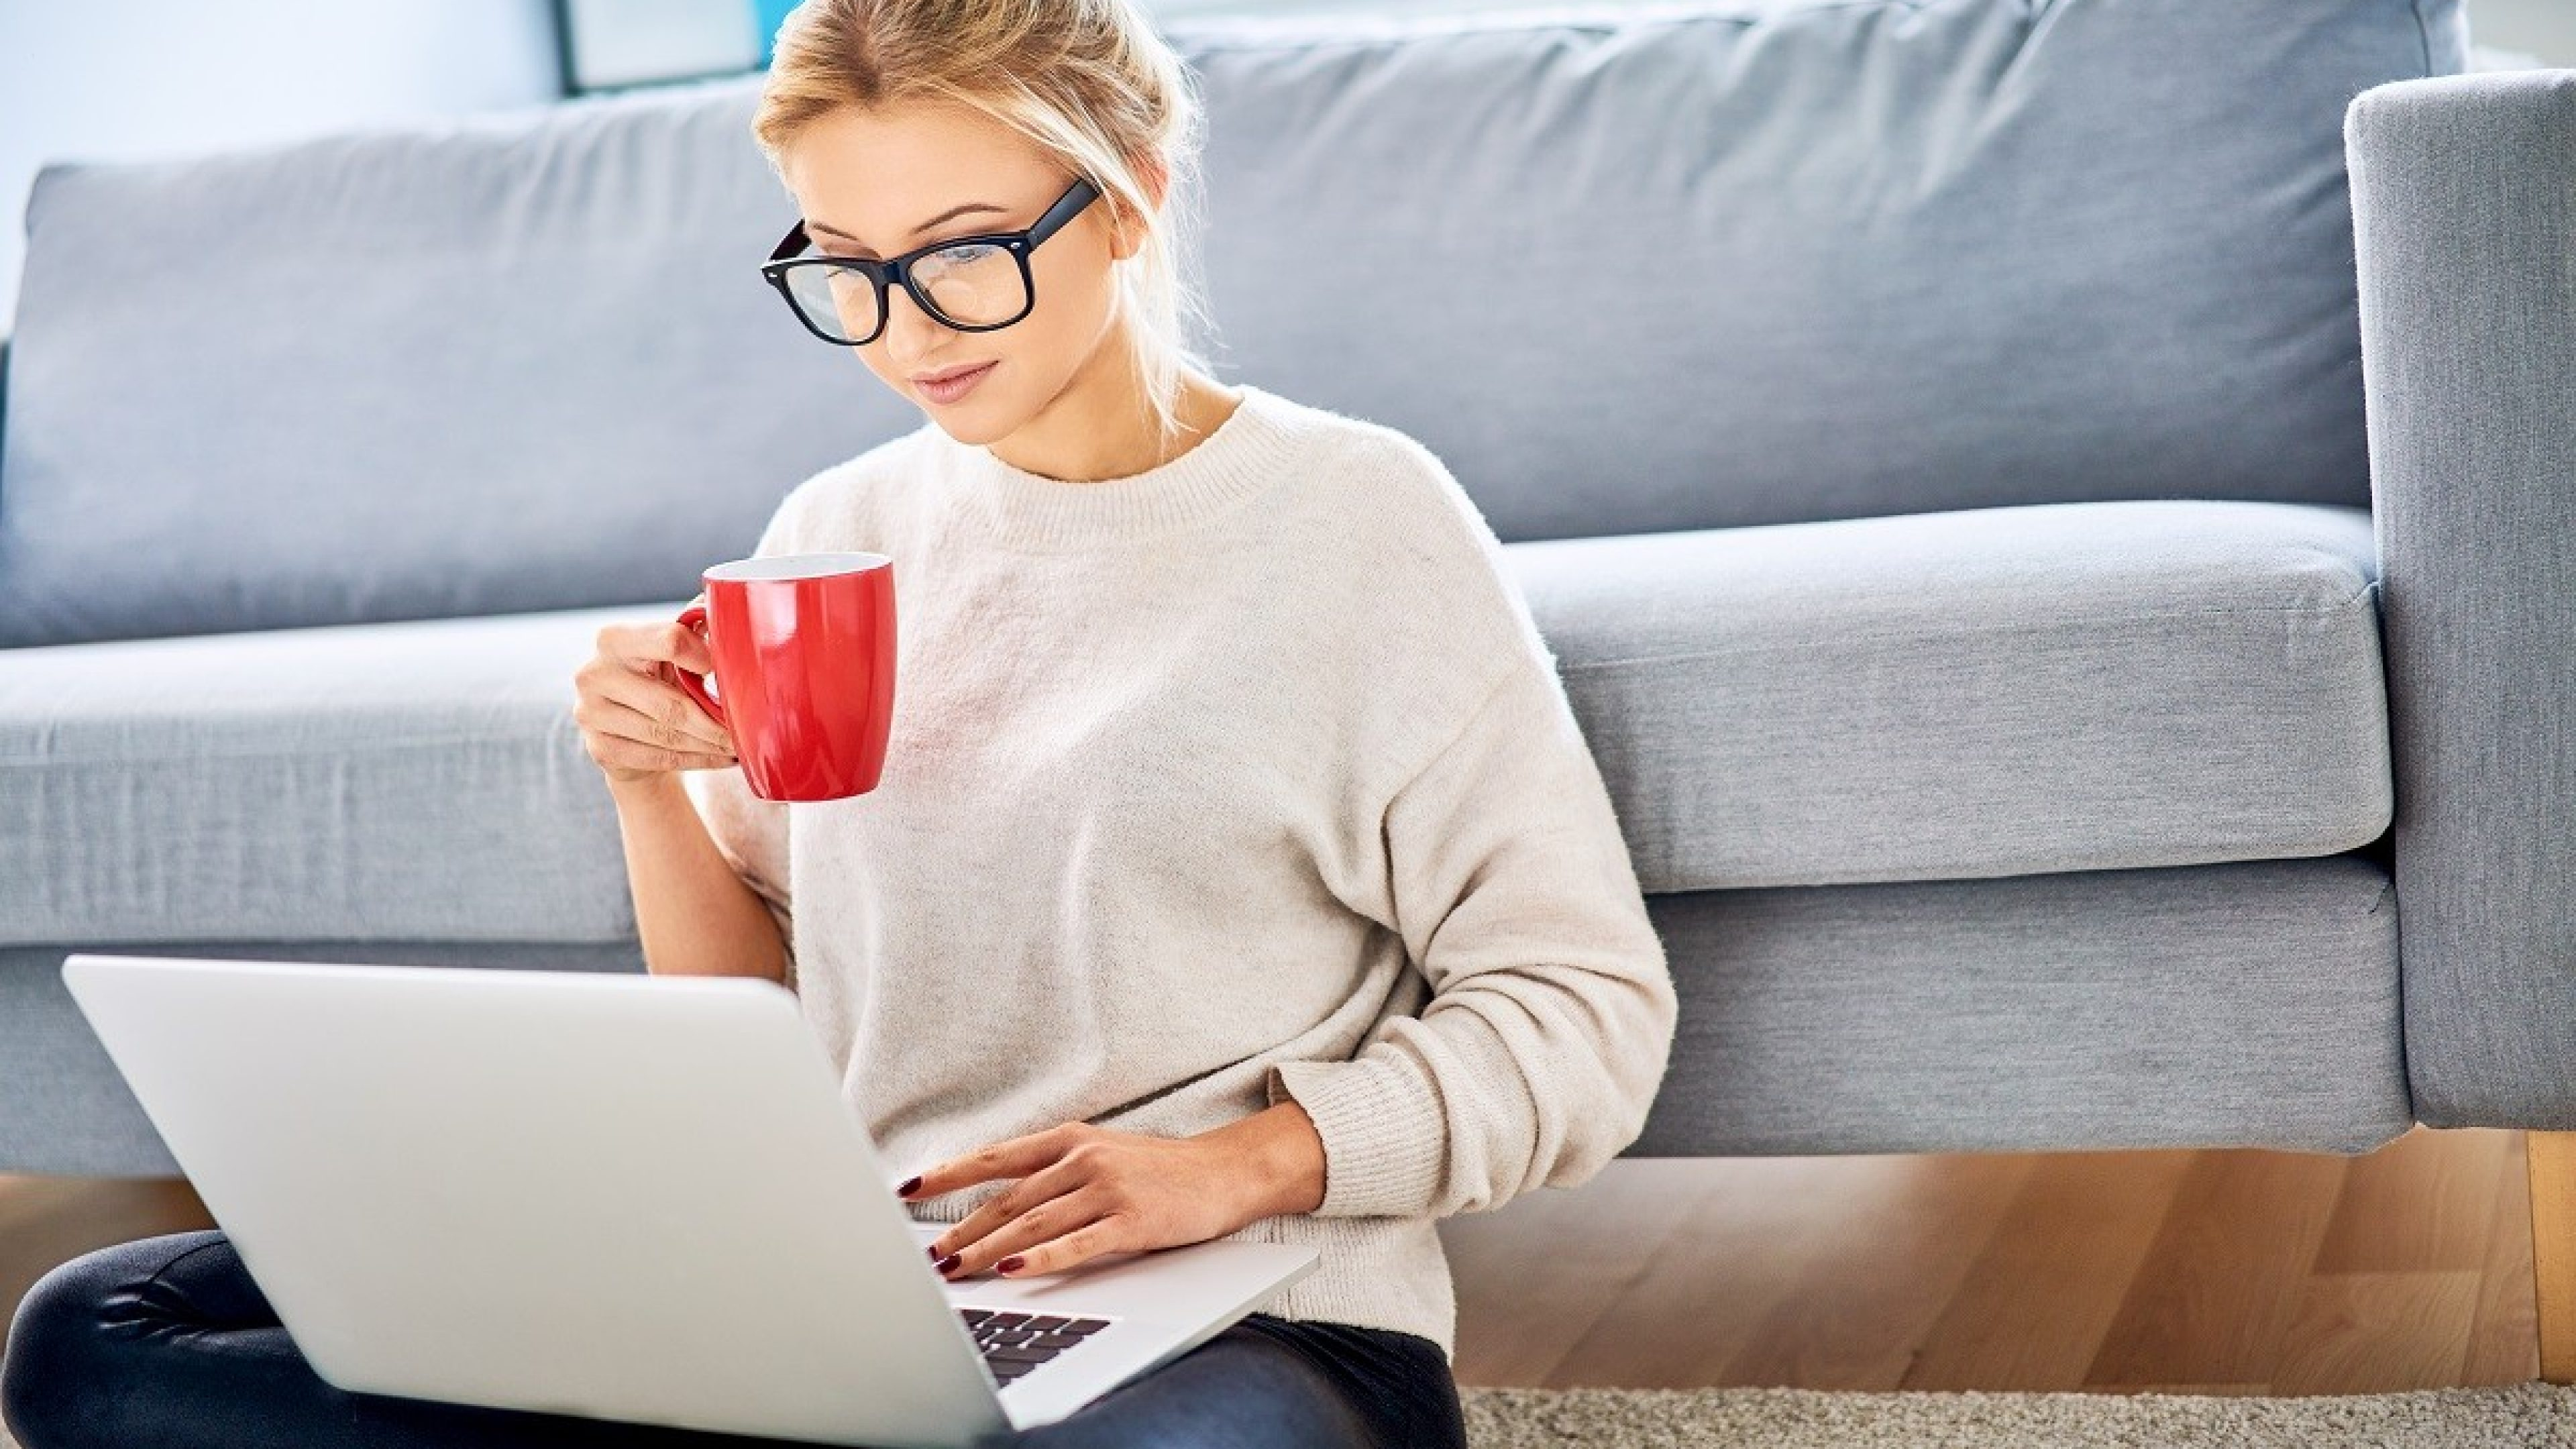 Young woman having coffee while using laptop and sitting on floor at home